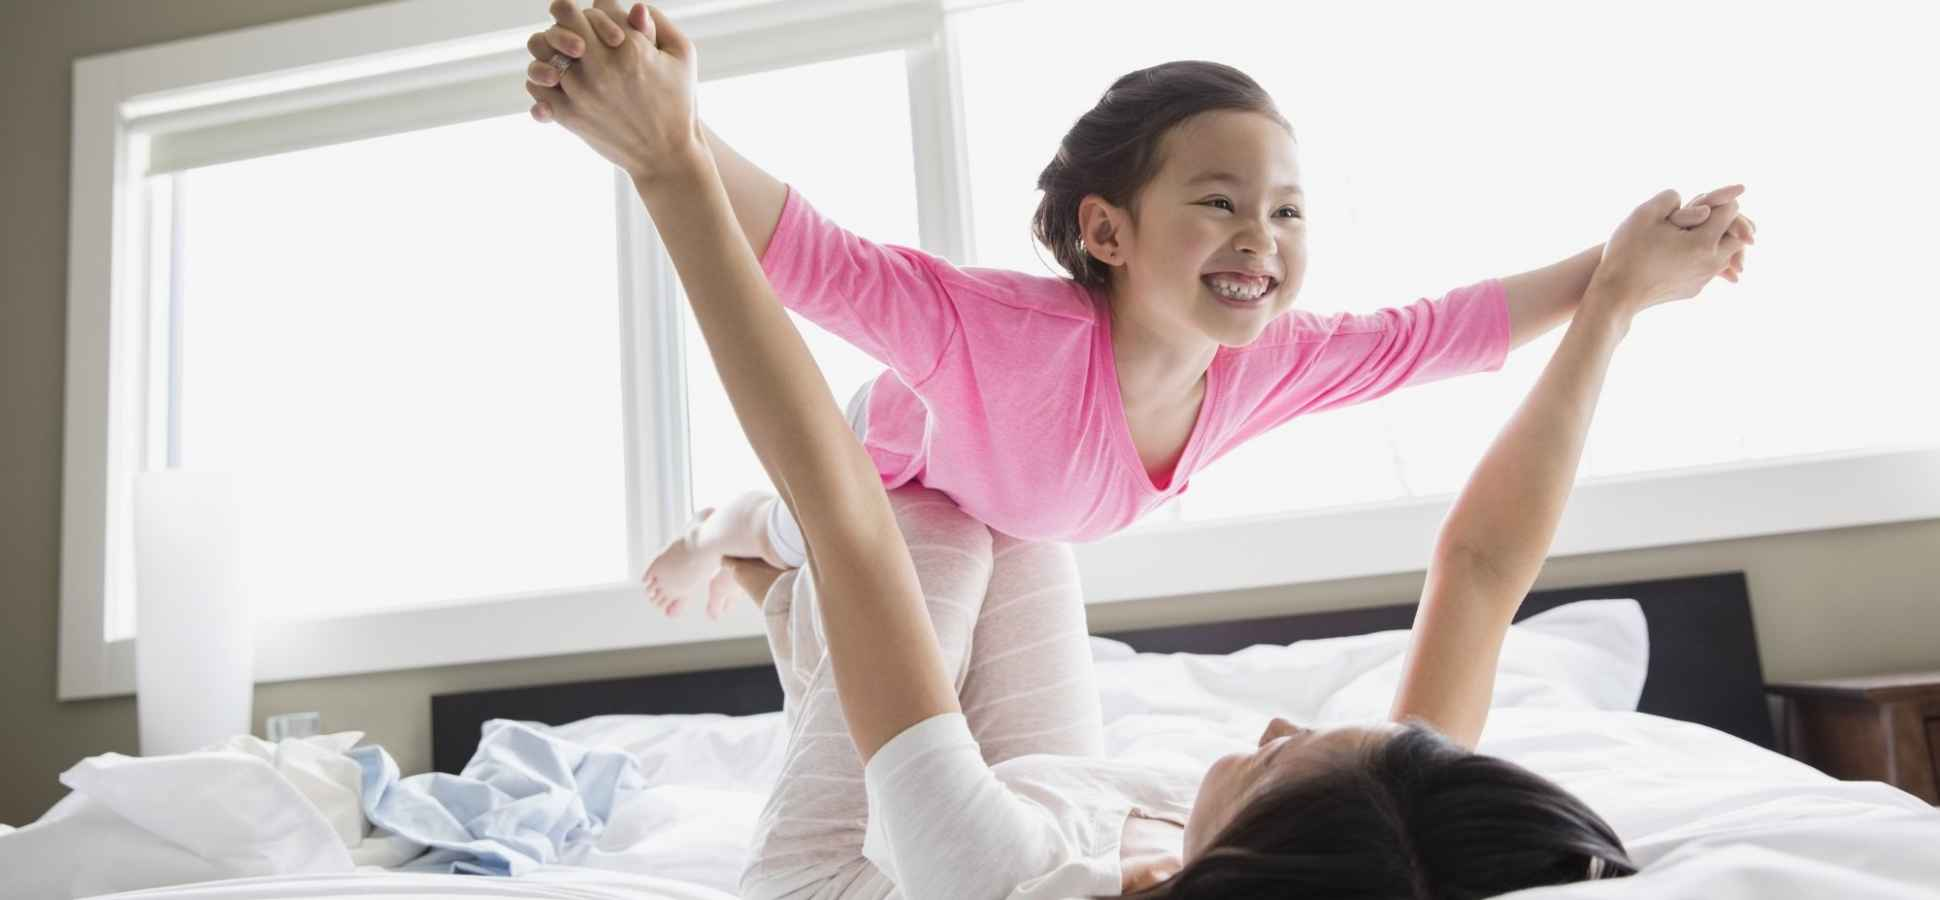 Want to Raise Emotionally Intelligent Children? A Child Development Expert Says Do These 5 Things